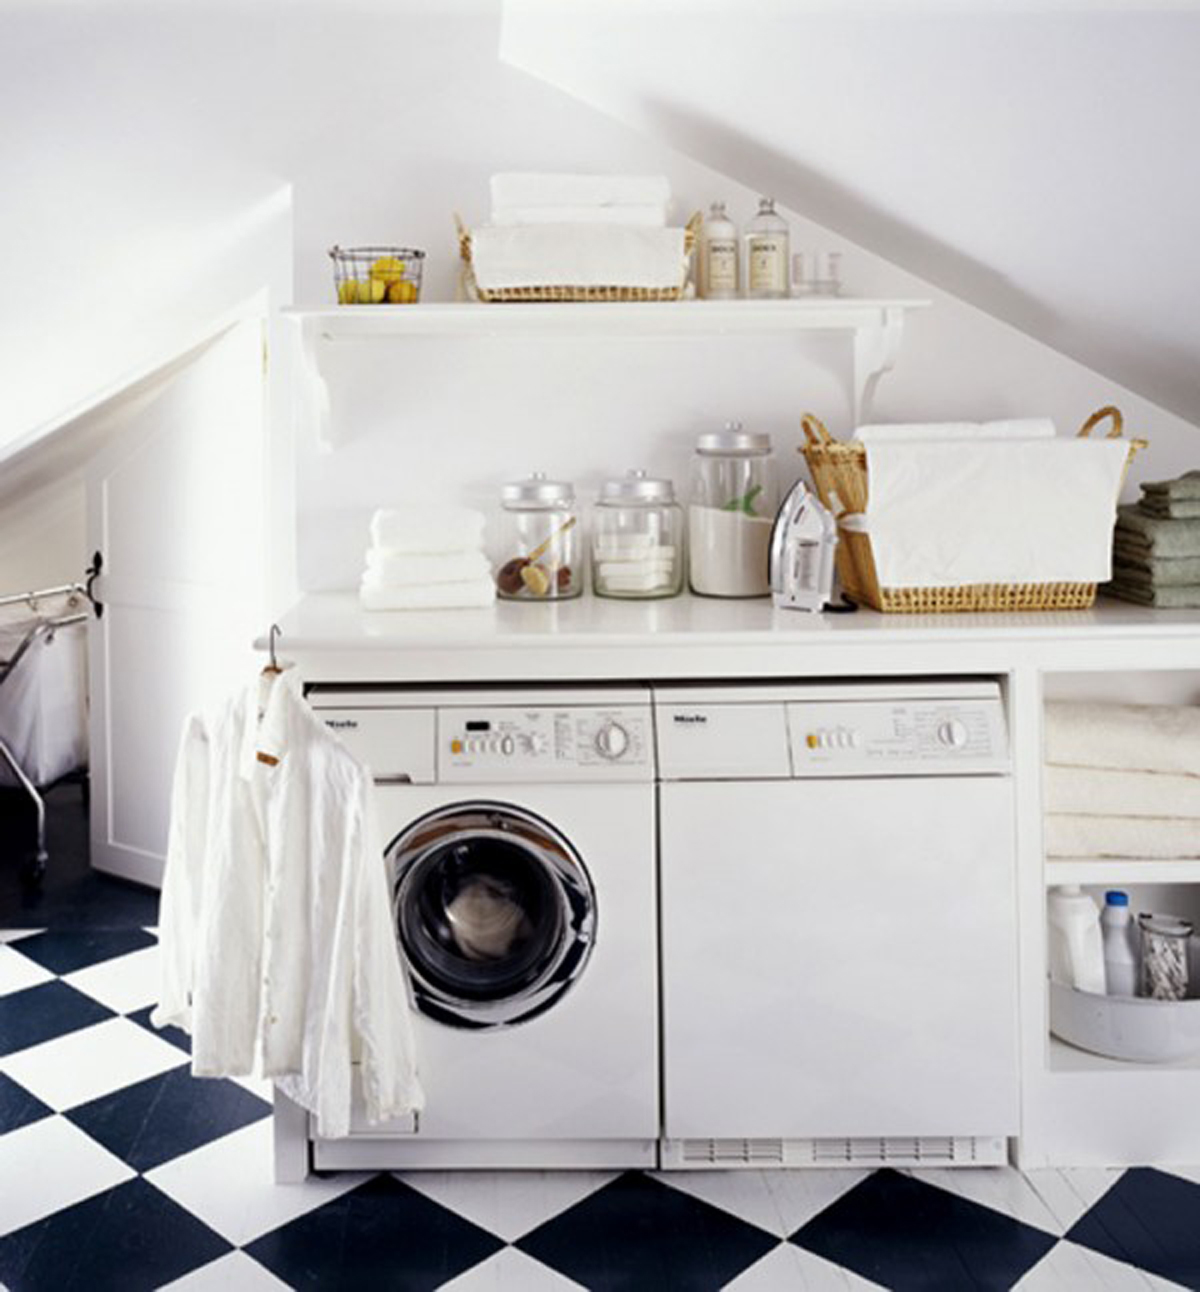 Hunted interior laundry room inspirations for Laundry room plans